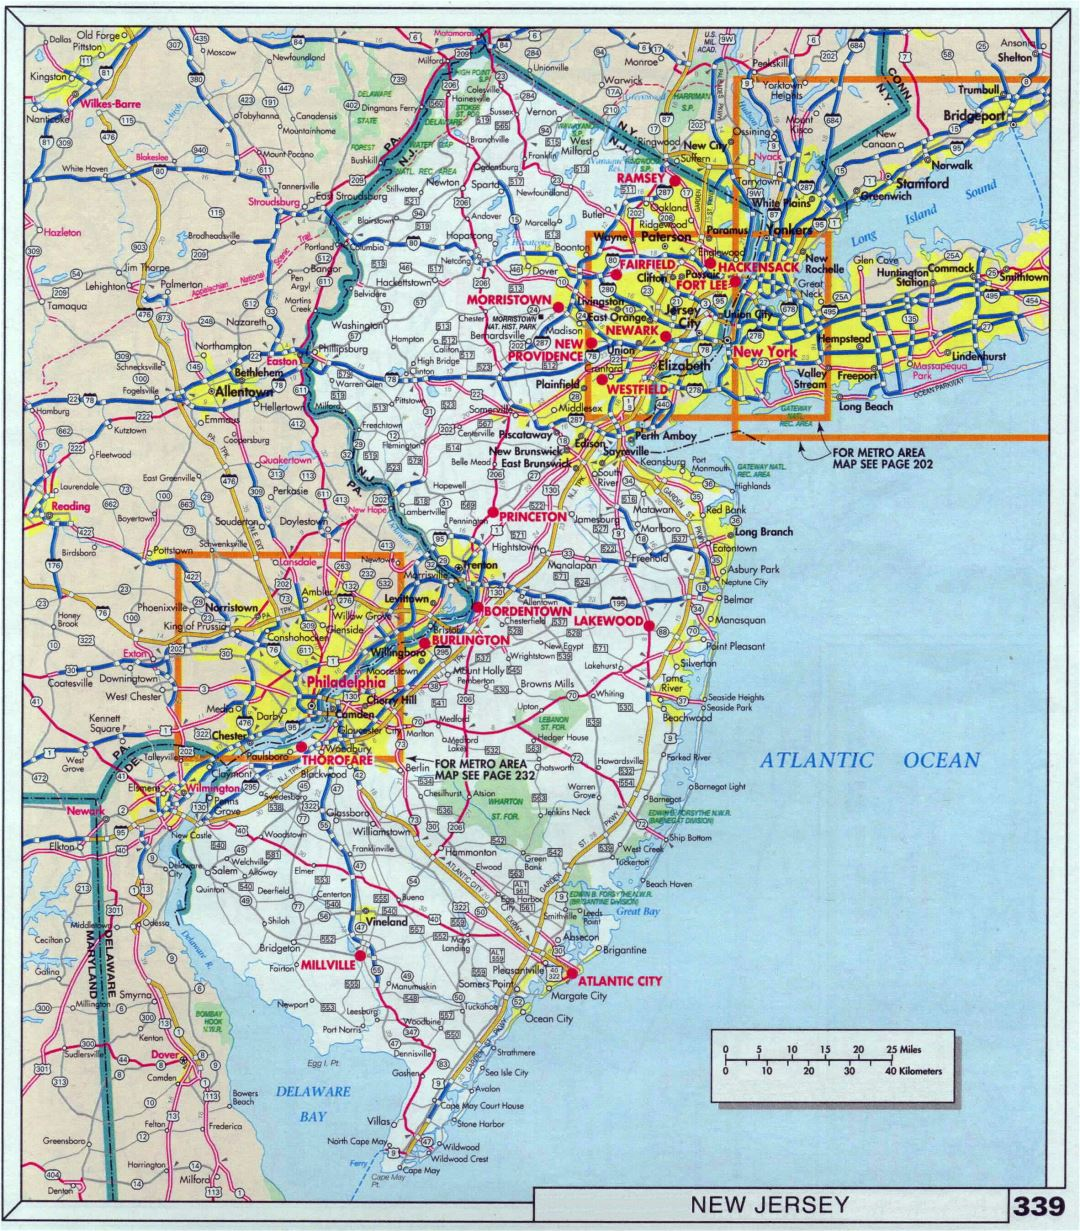 Large detailed roads and highways map of New Jersey state with national parks and cities